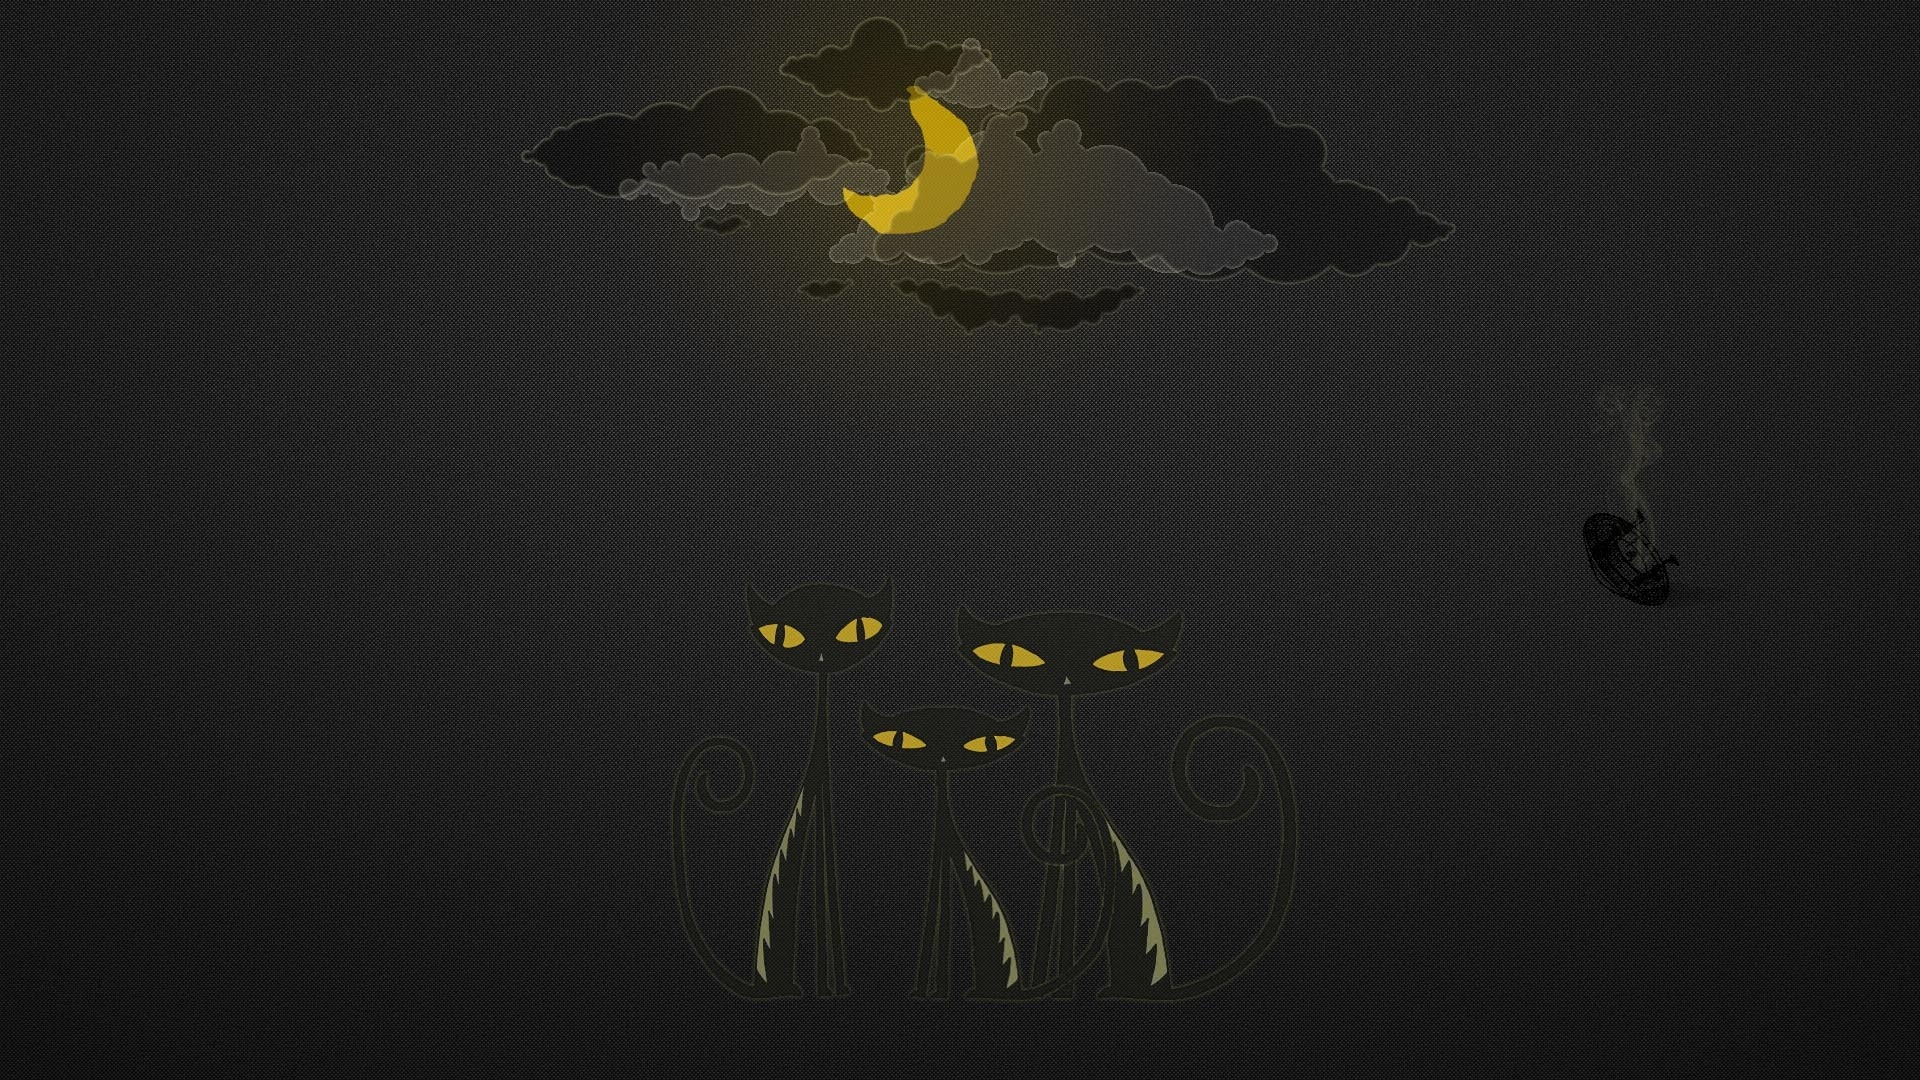 Download Wallpaper 1920x1080 Cats Drawing Black Yellow Sky Full Hd 1080p Hd Background